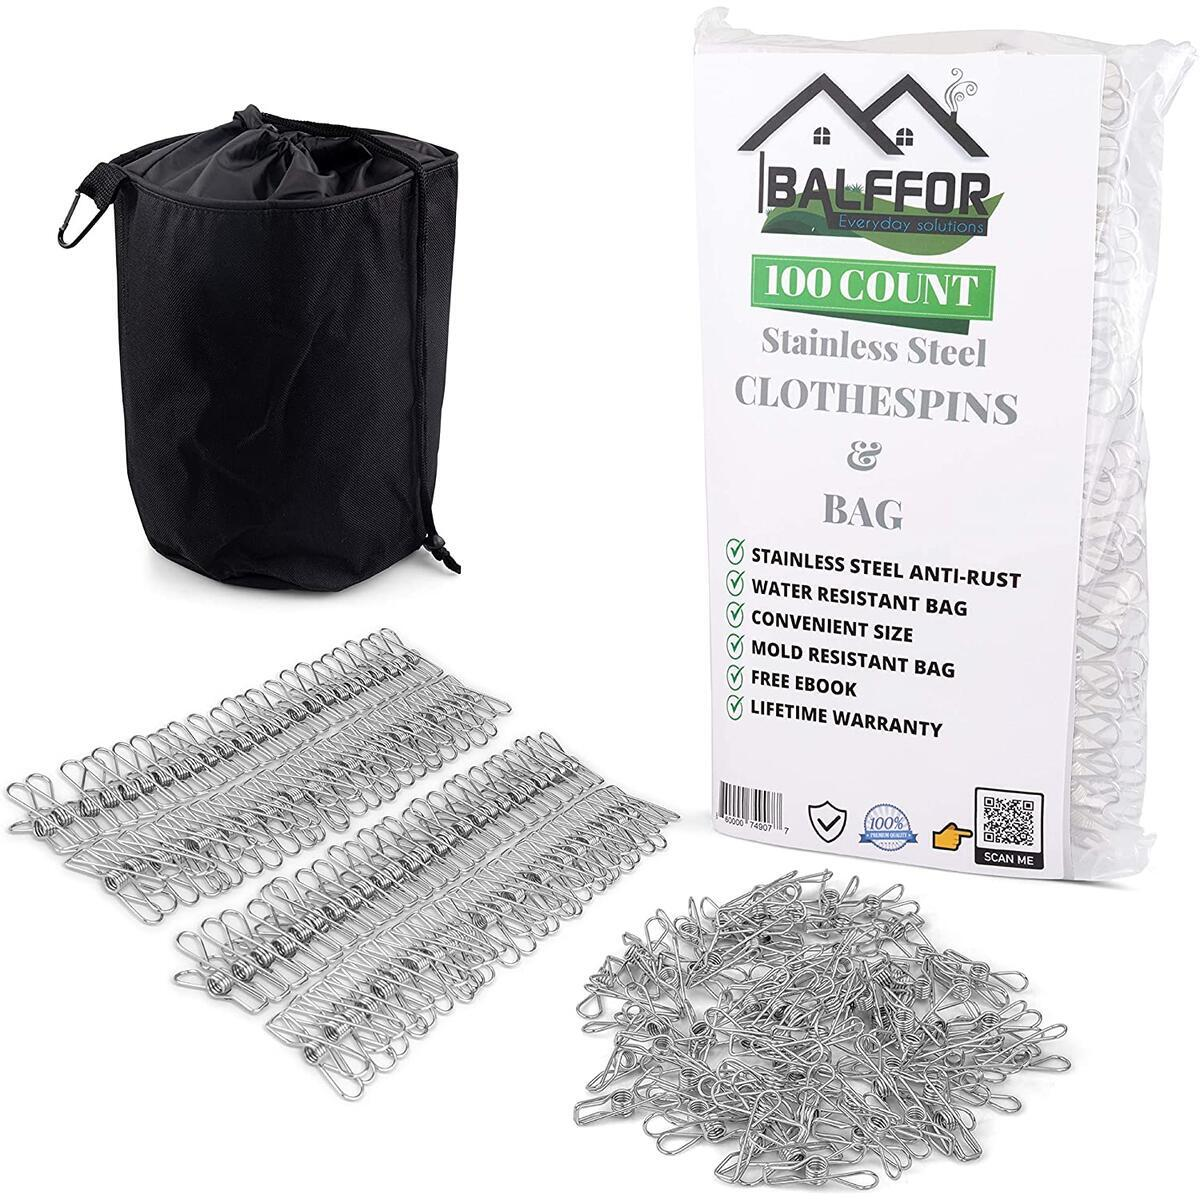 Balffor 100 Small Stainless Steel Clothespins & Clothespin Bag - Metal, Light, Mini Clips in Bulk - Multi-Purpose Wire Utility Clothes Peg & Laundry Pegs with Strong Clamp for Outdoor Clothesline